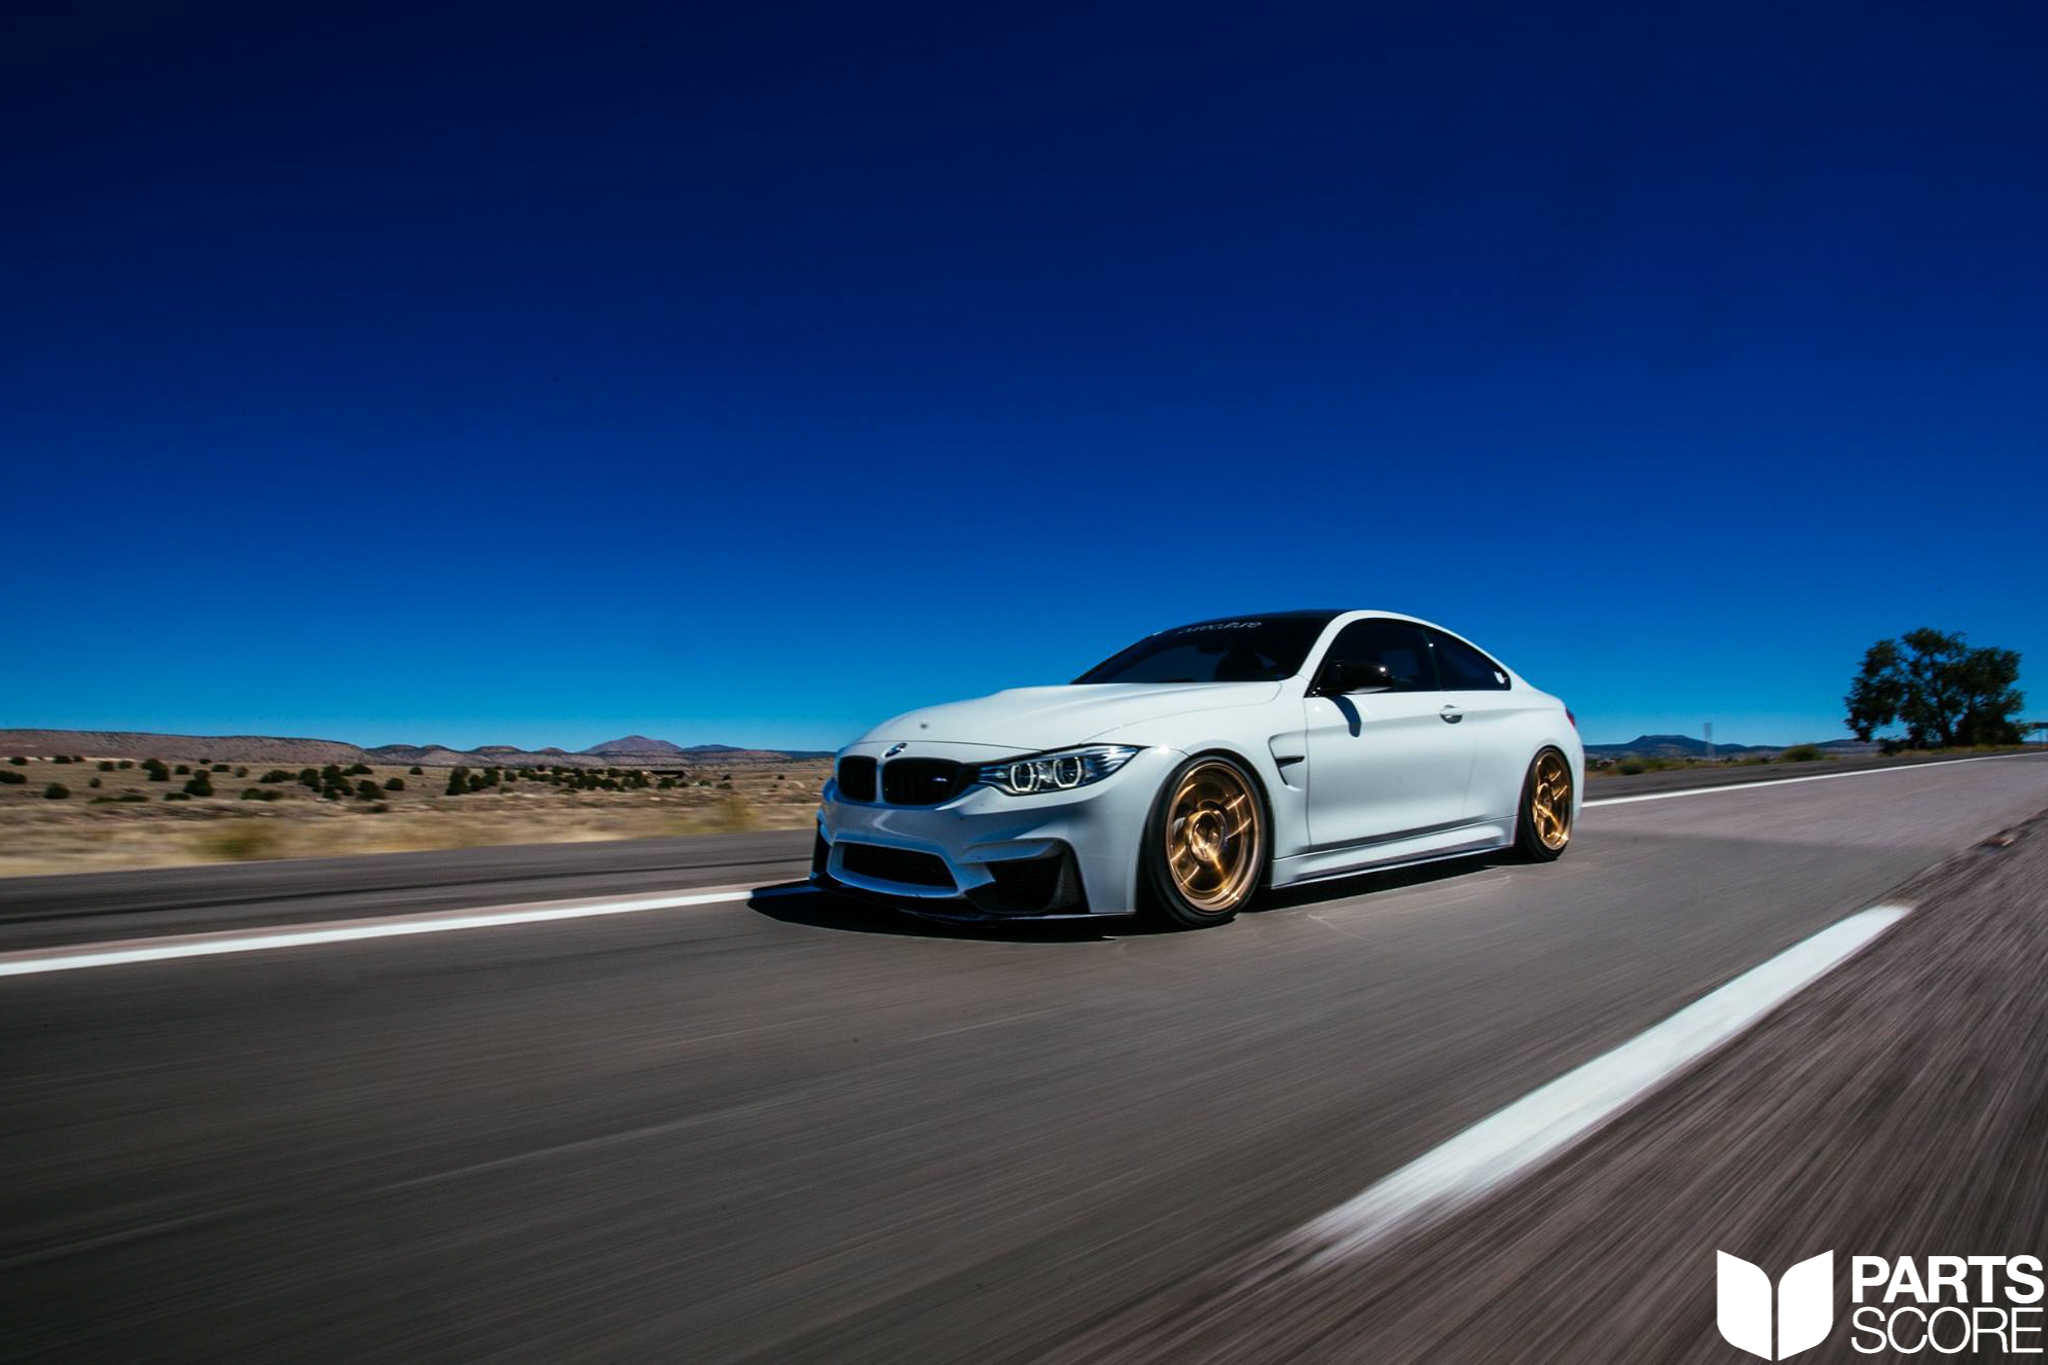 bmw m4 featuring burger tuning rotiform wheels awe tuning kw suspension evolution race. Black Bedroom Furniture Sets. Home Design Ideas